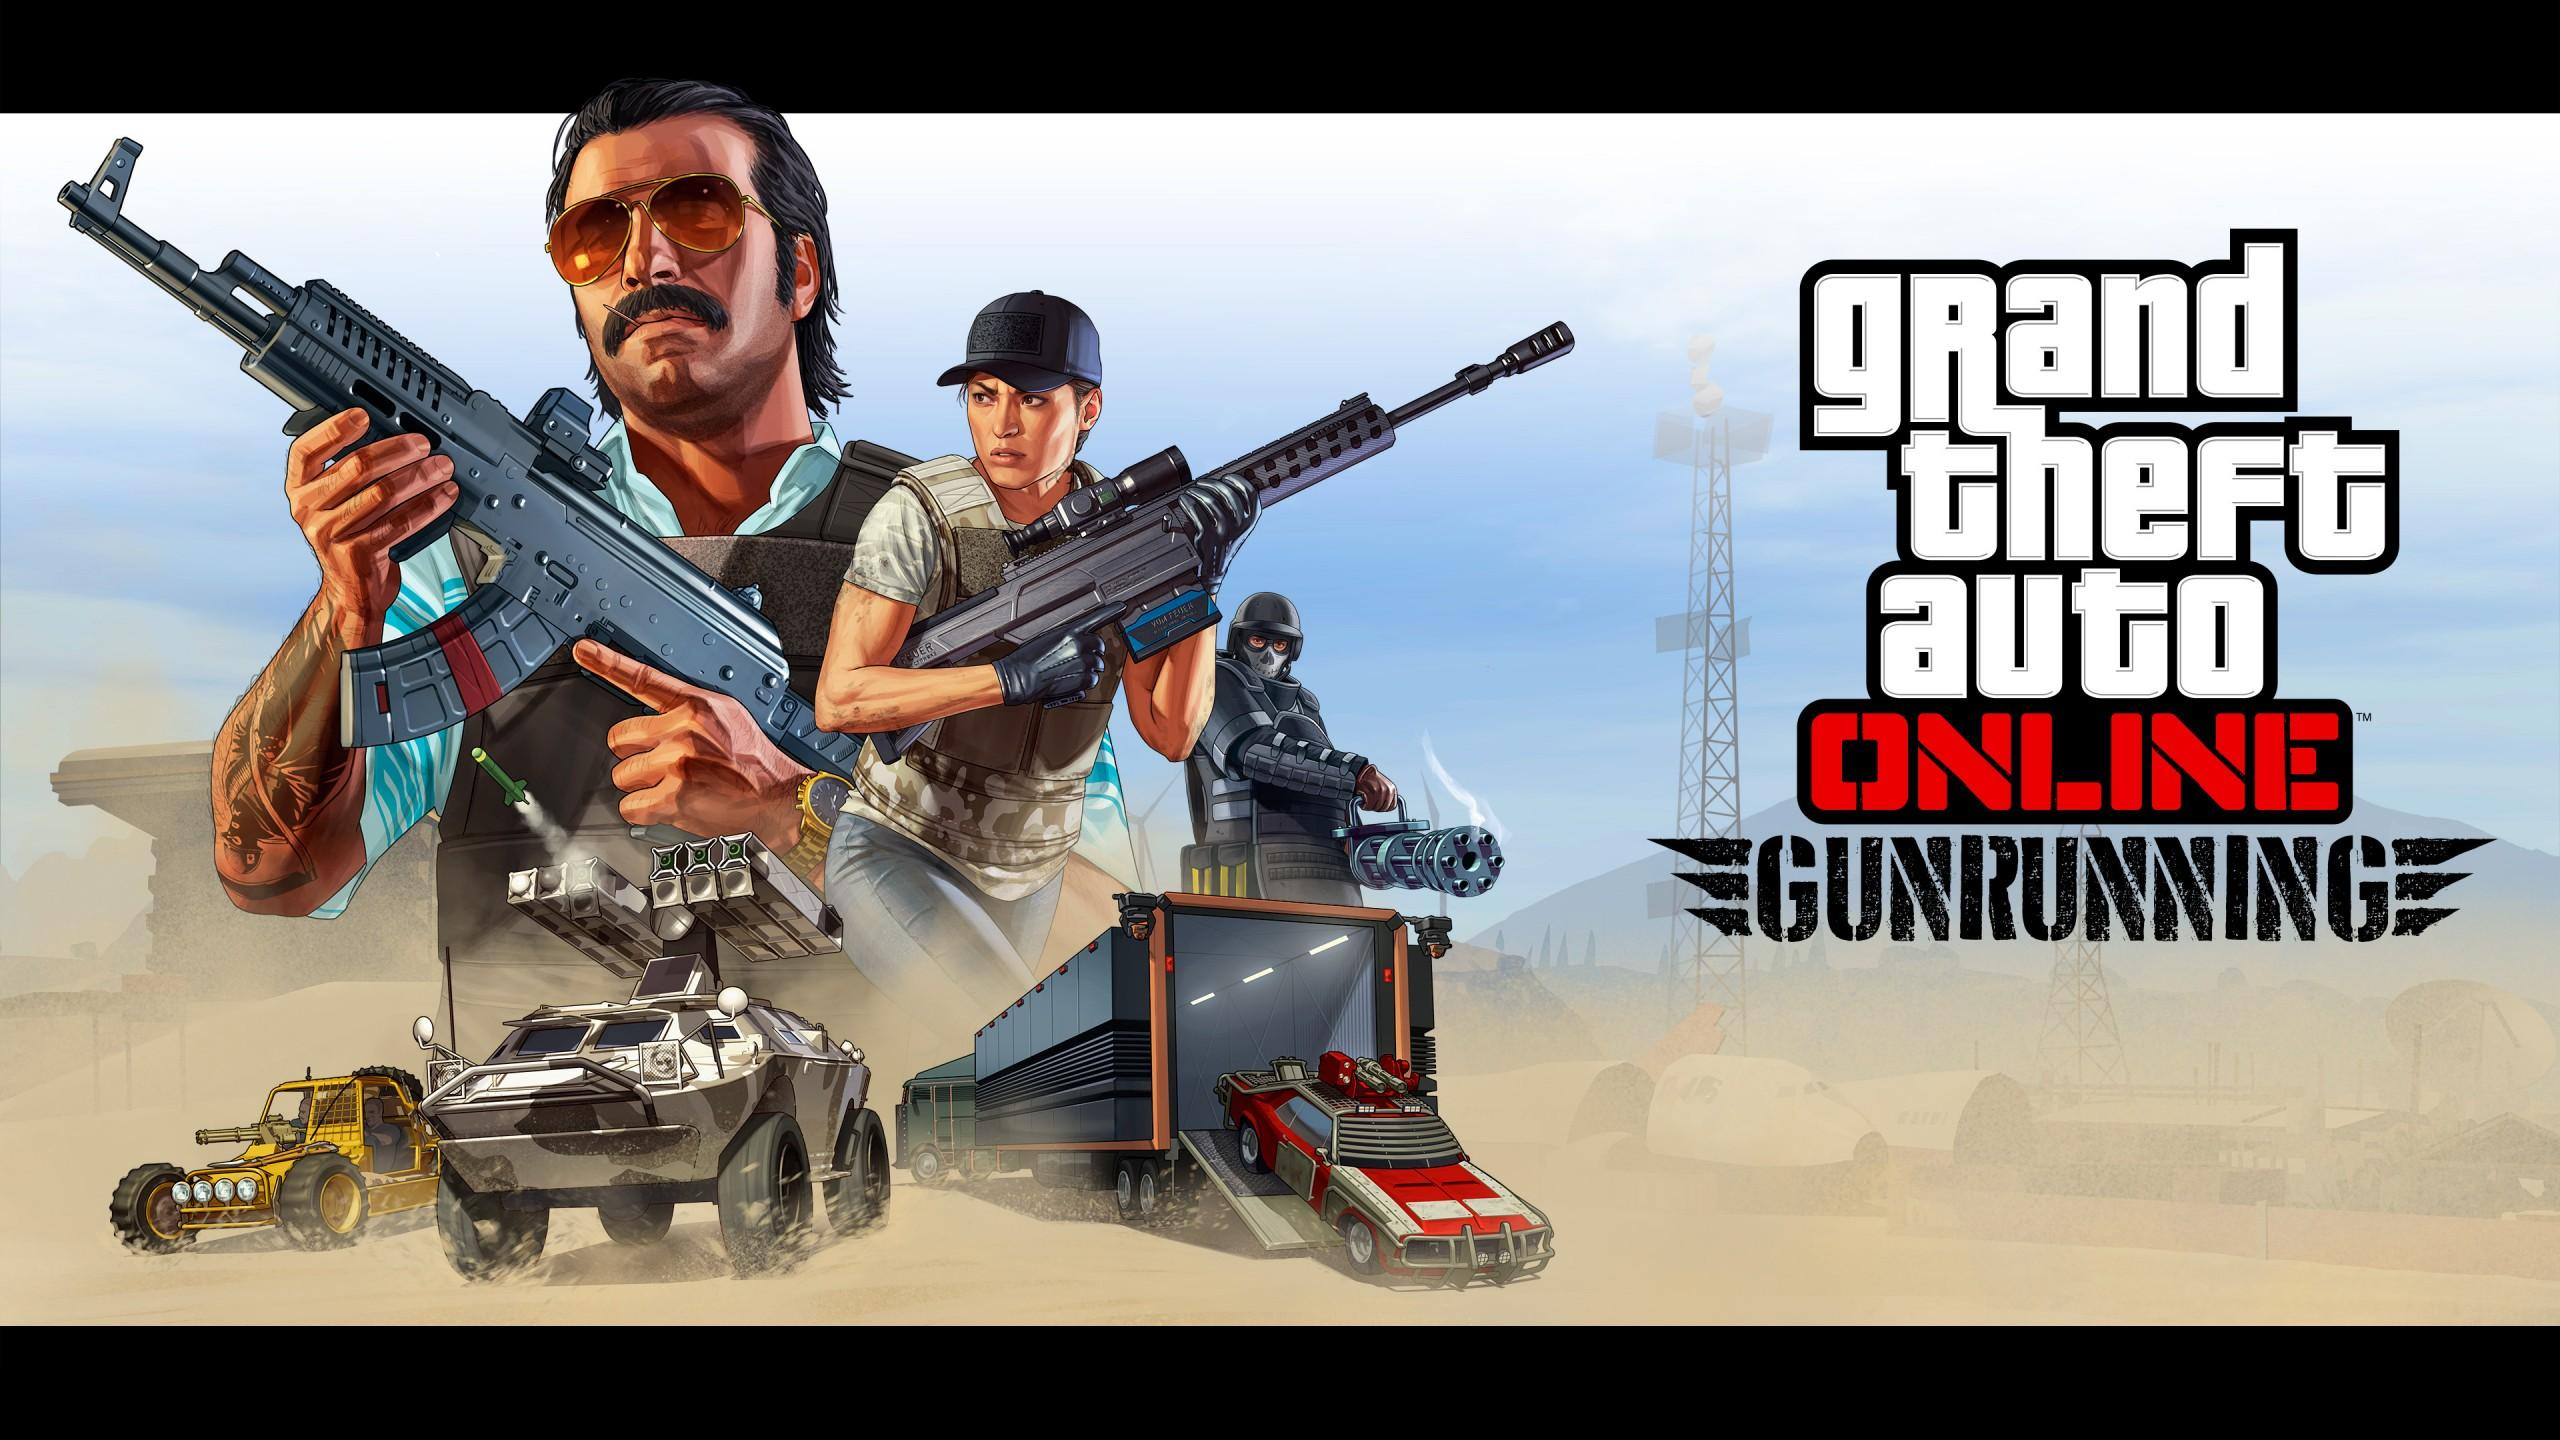 GTA V Artwork Gunrunning